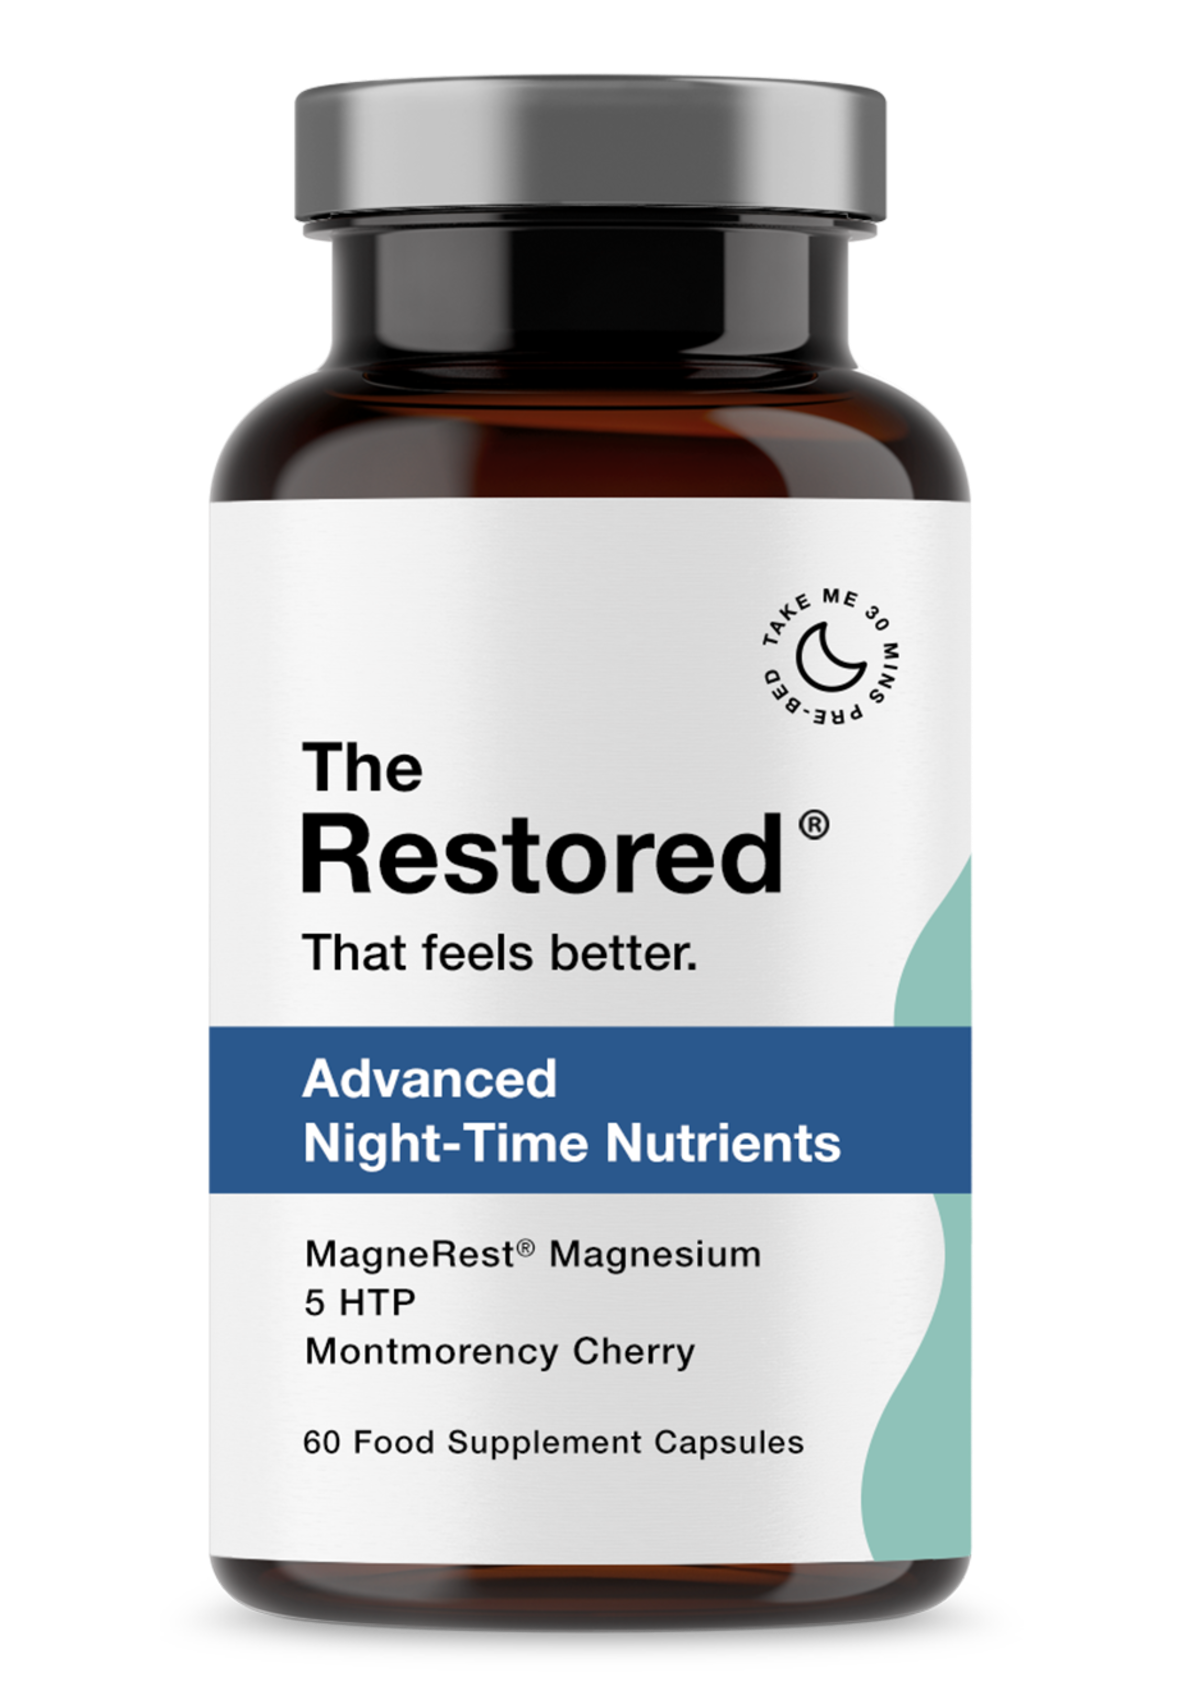 Advanced Night-Time Nutrients